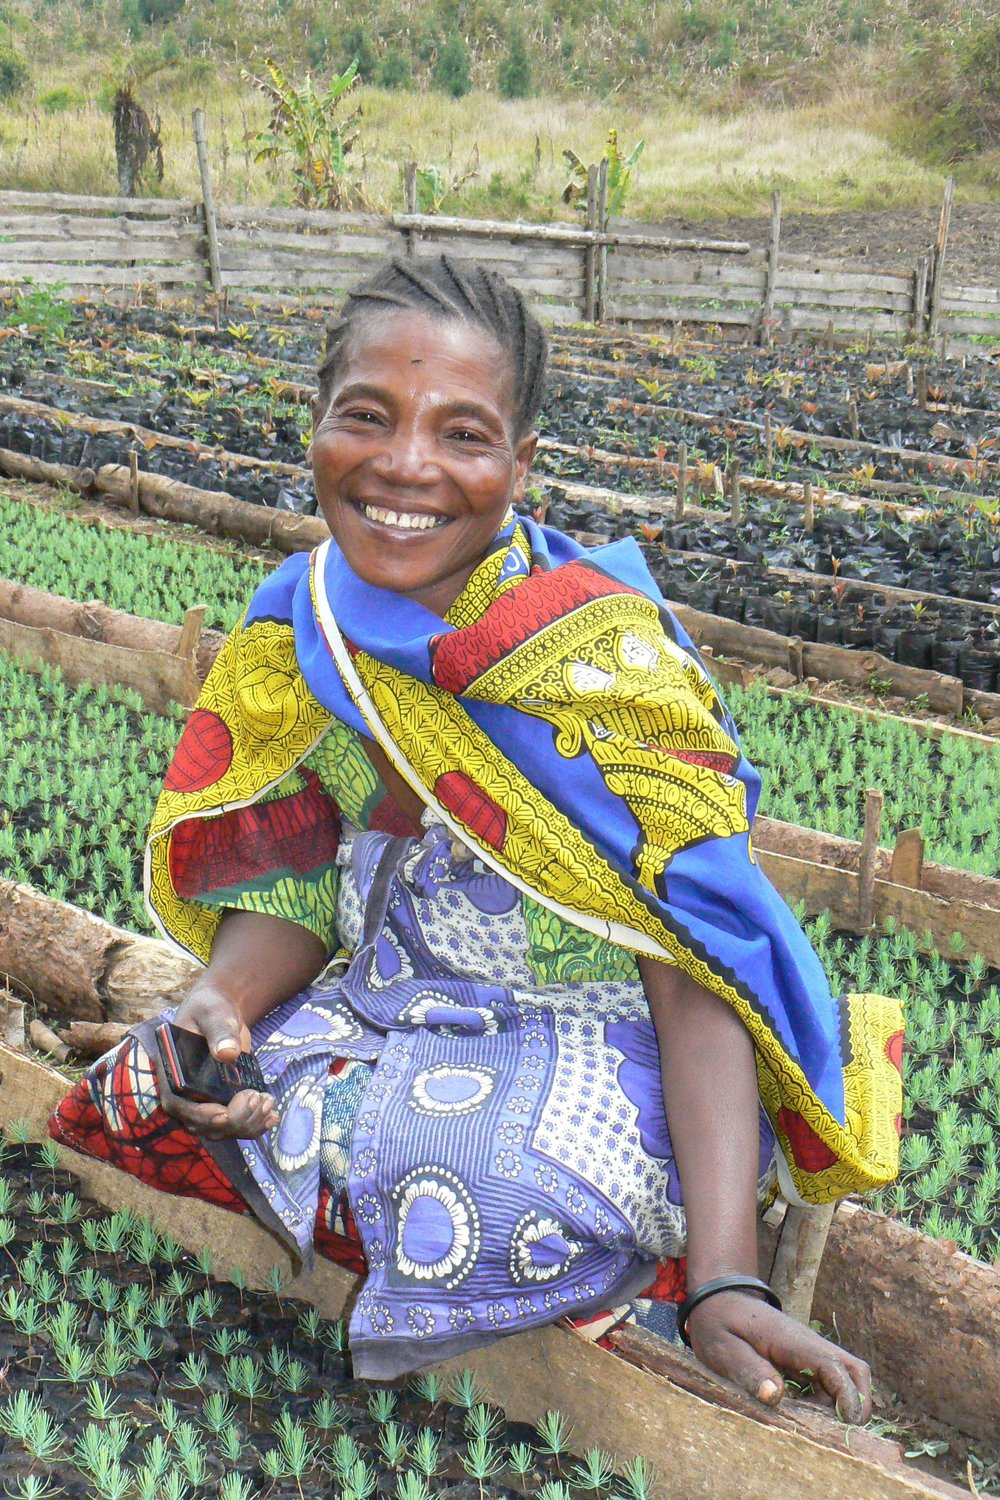 A woman working at a tree nursery in Njombe, Tanzania. The saplings in the photo are pine saplings.